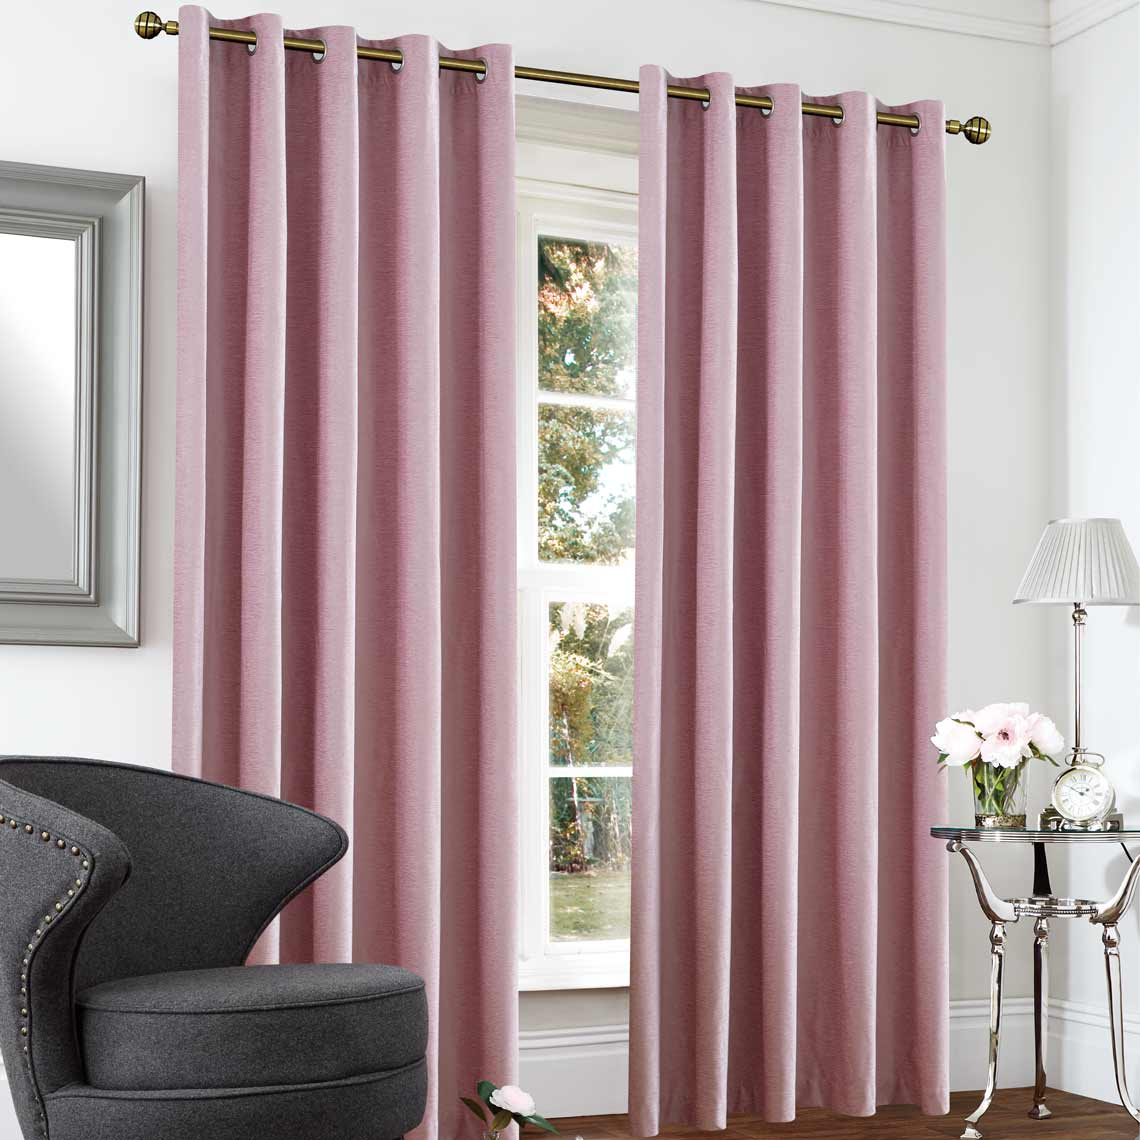 Blackout & Thermal Textured Rose Curtains